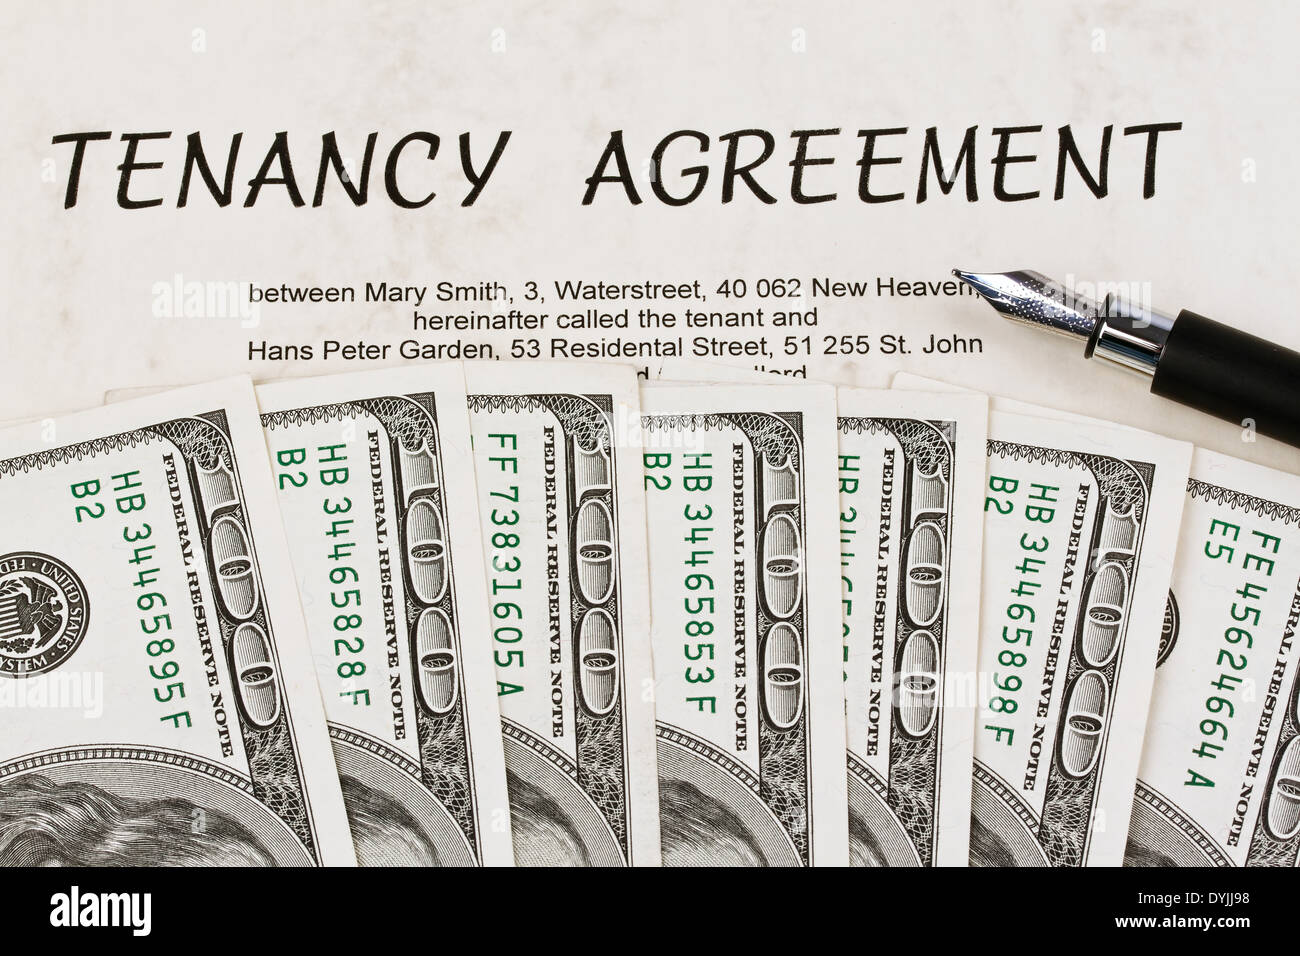 U.S. dollar bills and English lease contract, Dollar Geldscheine und englischer Mietvertrag - Stock Image